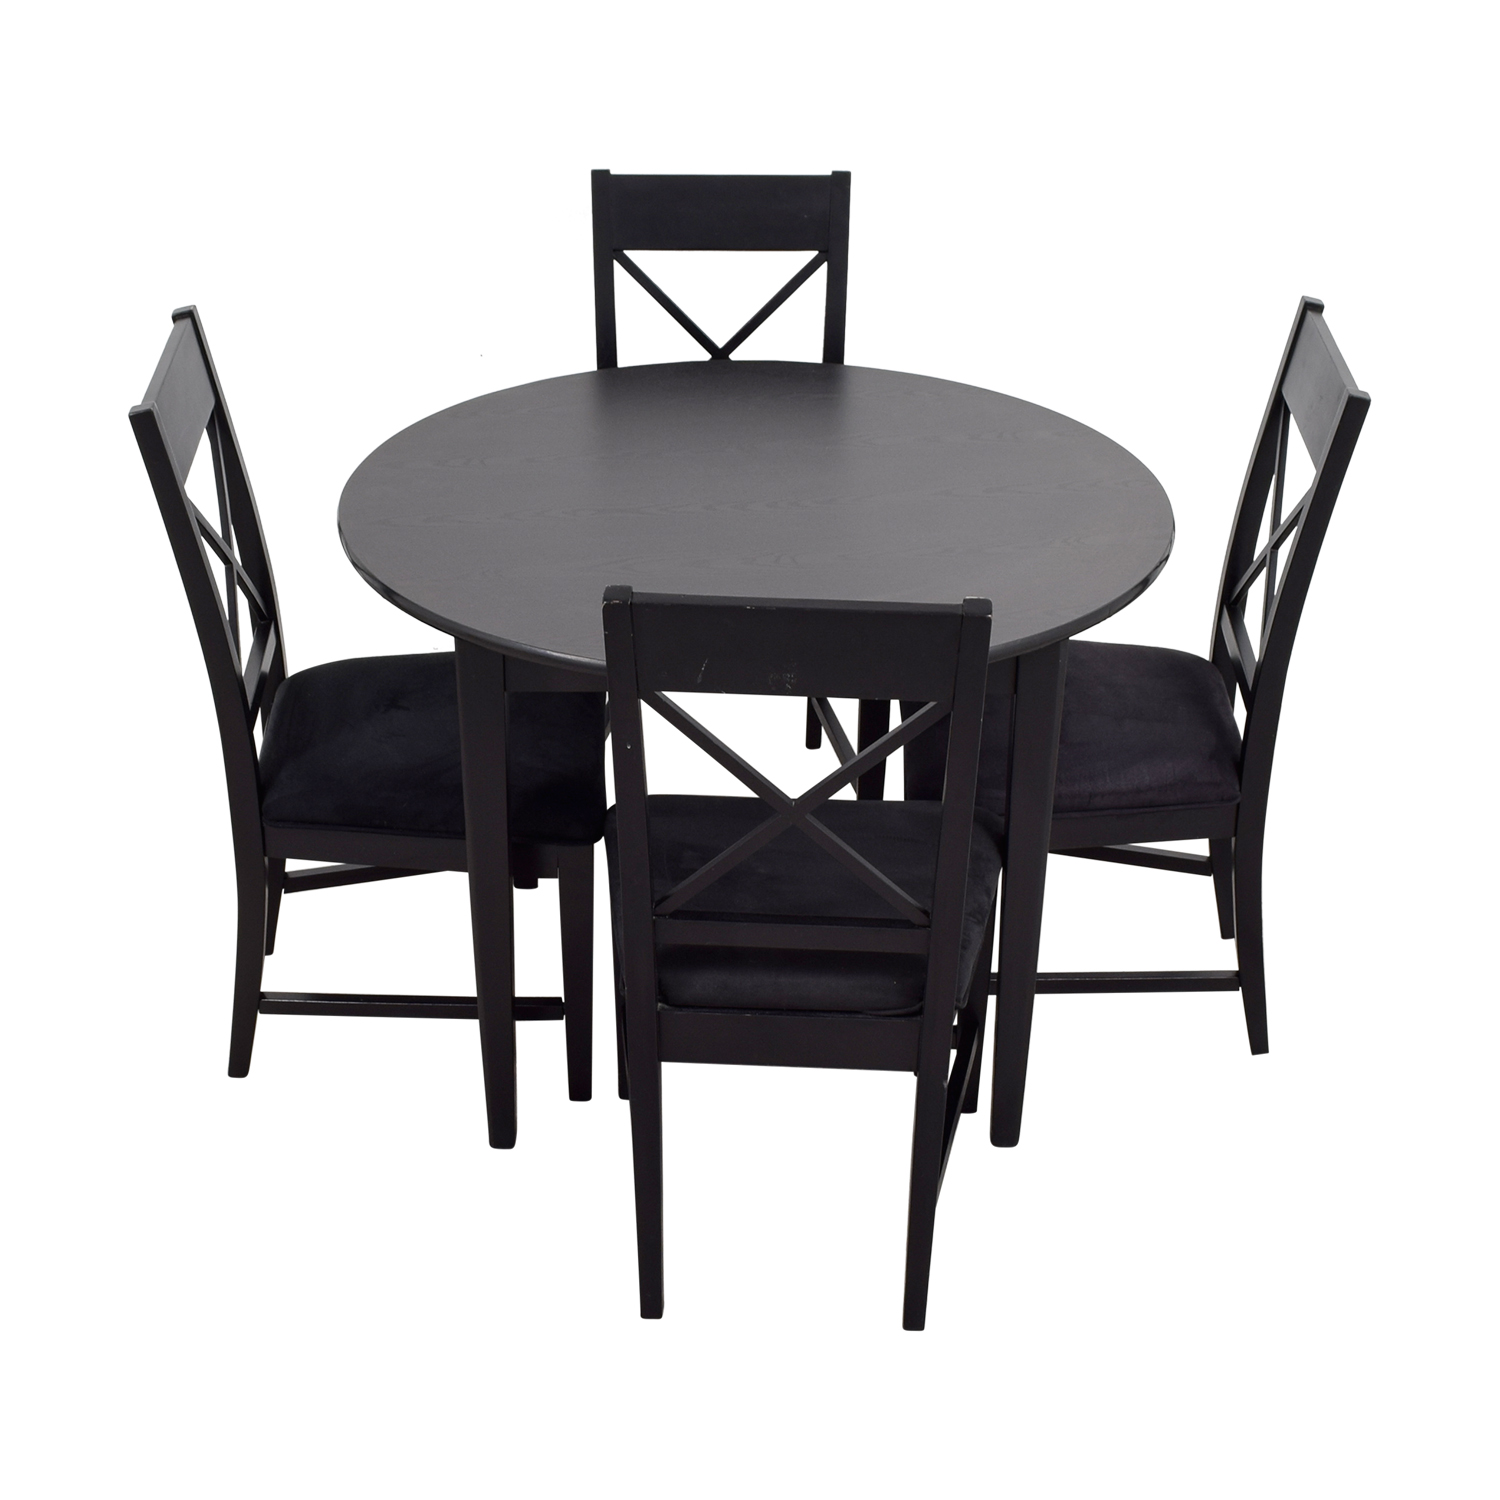 Black wood dining room table and chairs designer tables for Black wood dining table